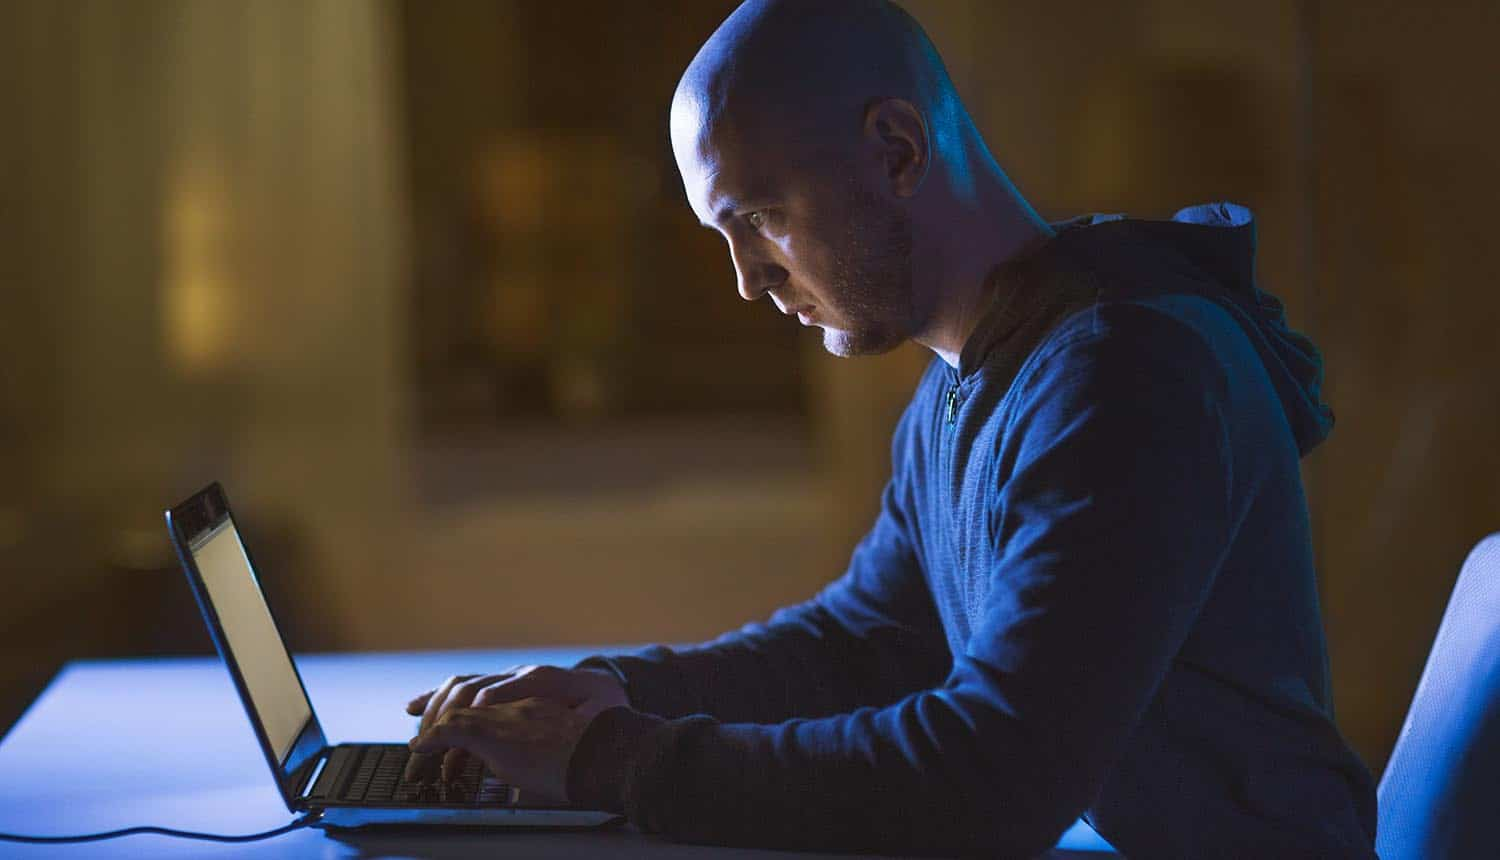 Hacker in dark room using laptop computer for cyber attack